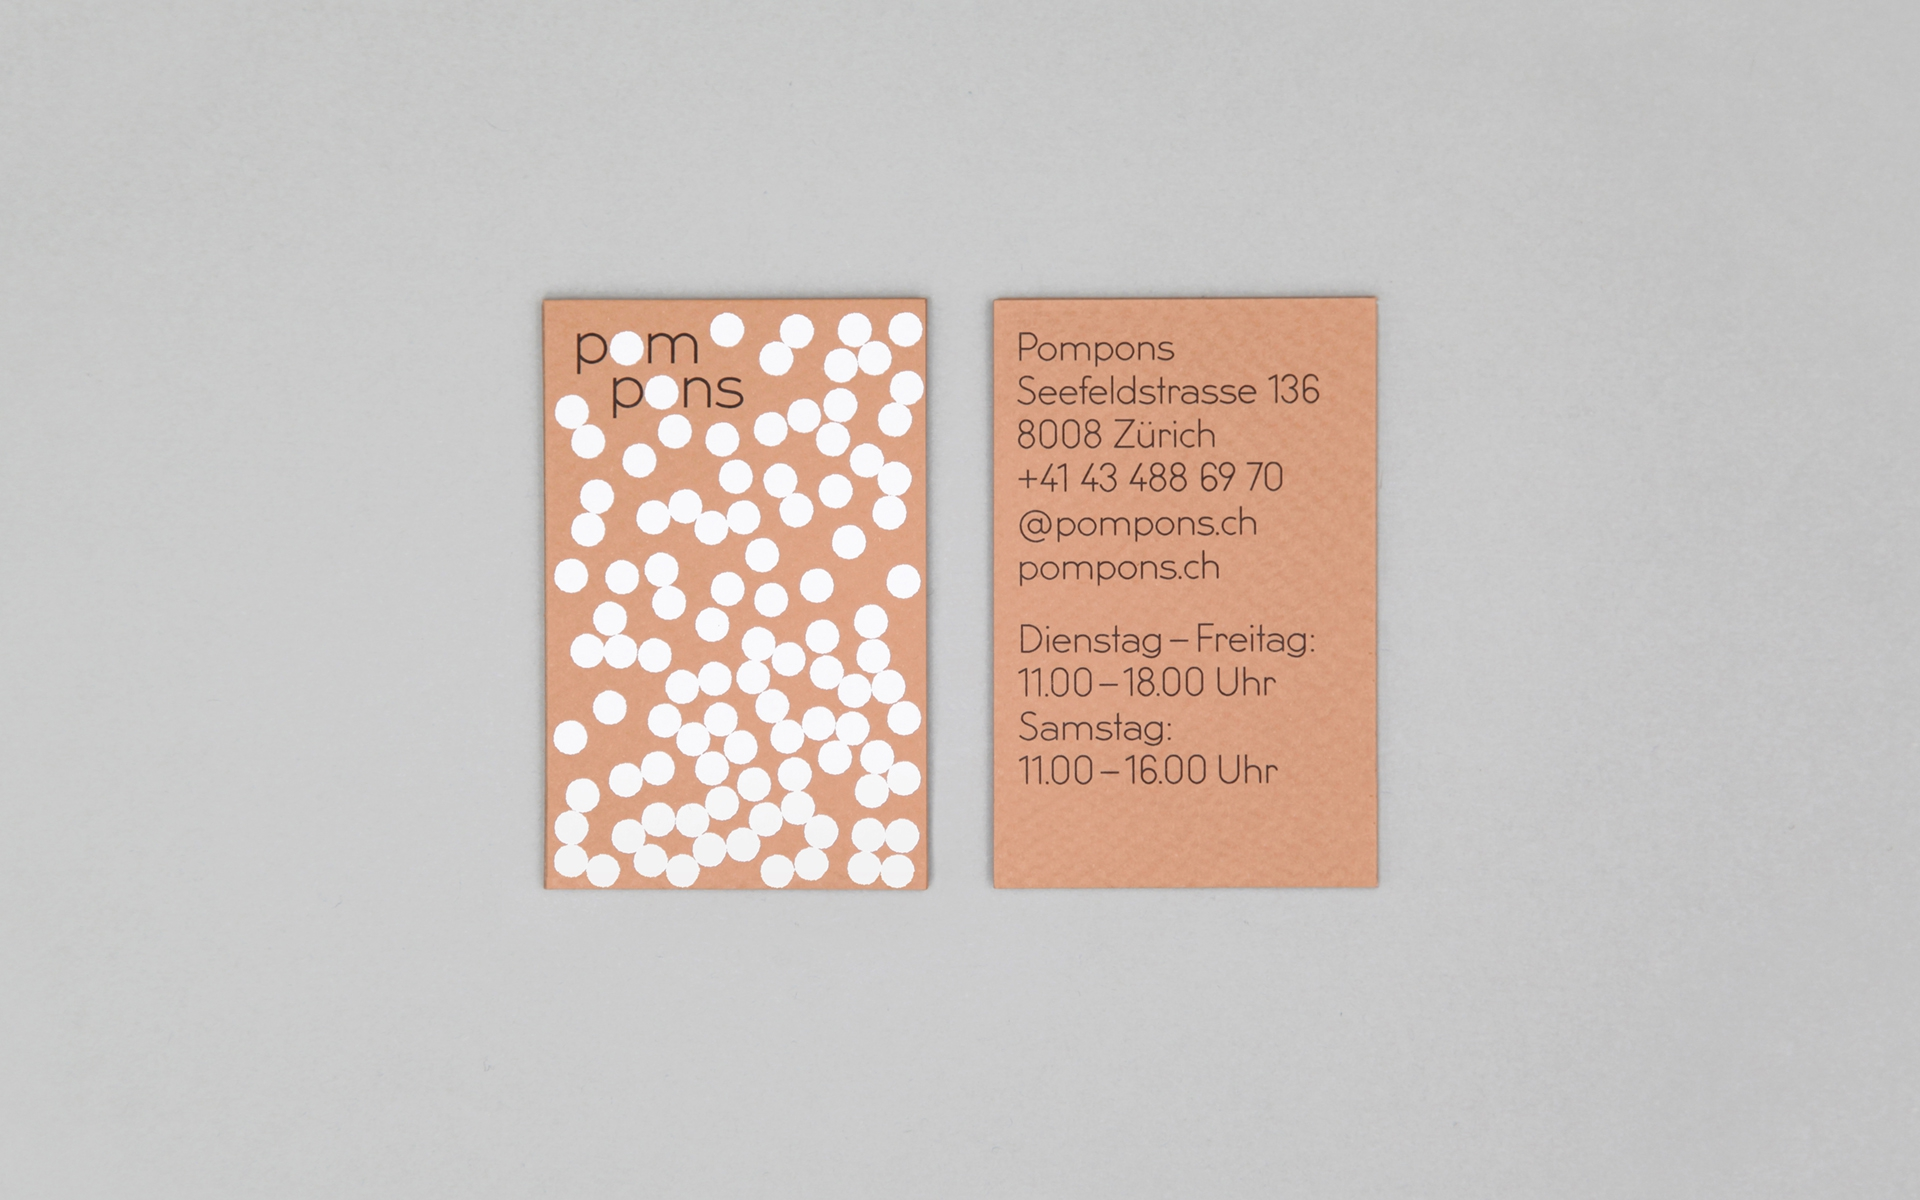 pompons-business-card-overhead-79487.jpg